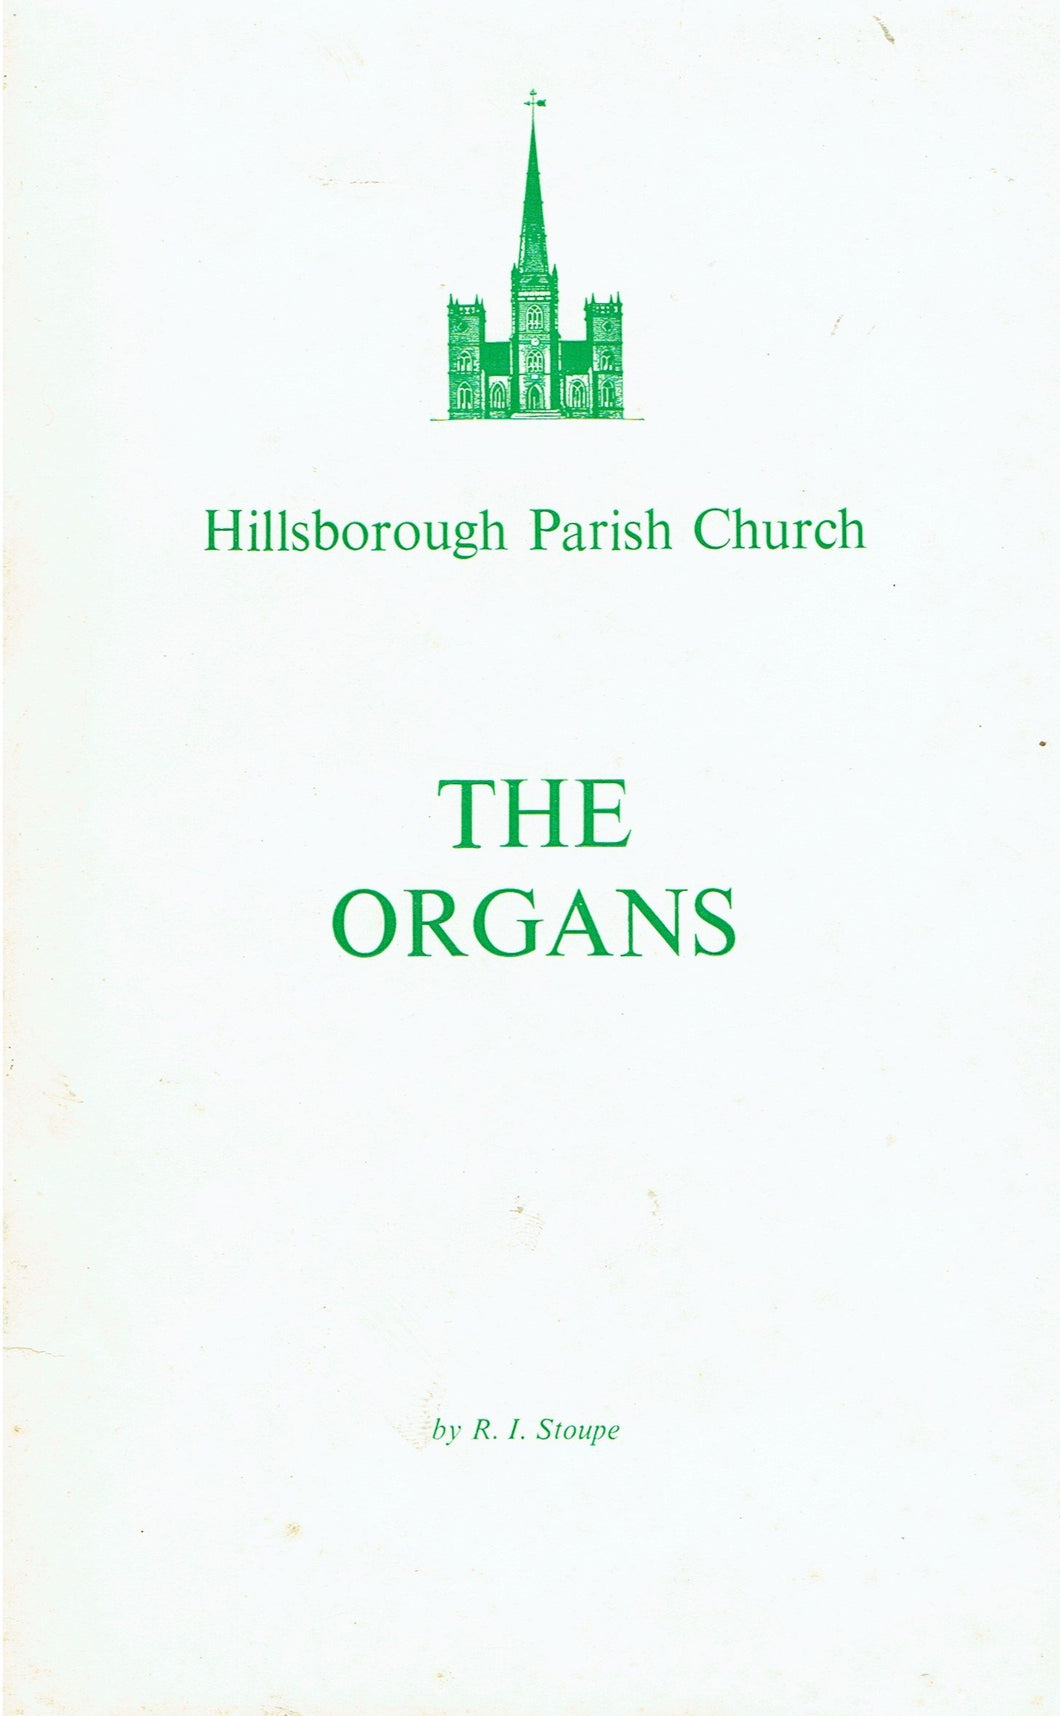 Hillsborough Parish Church: The Organs